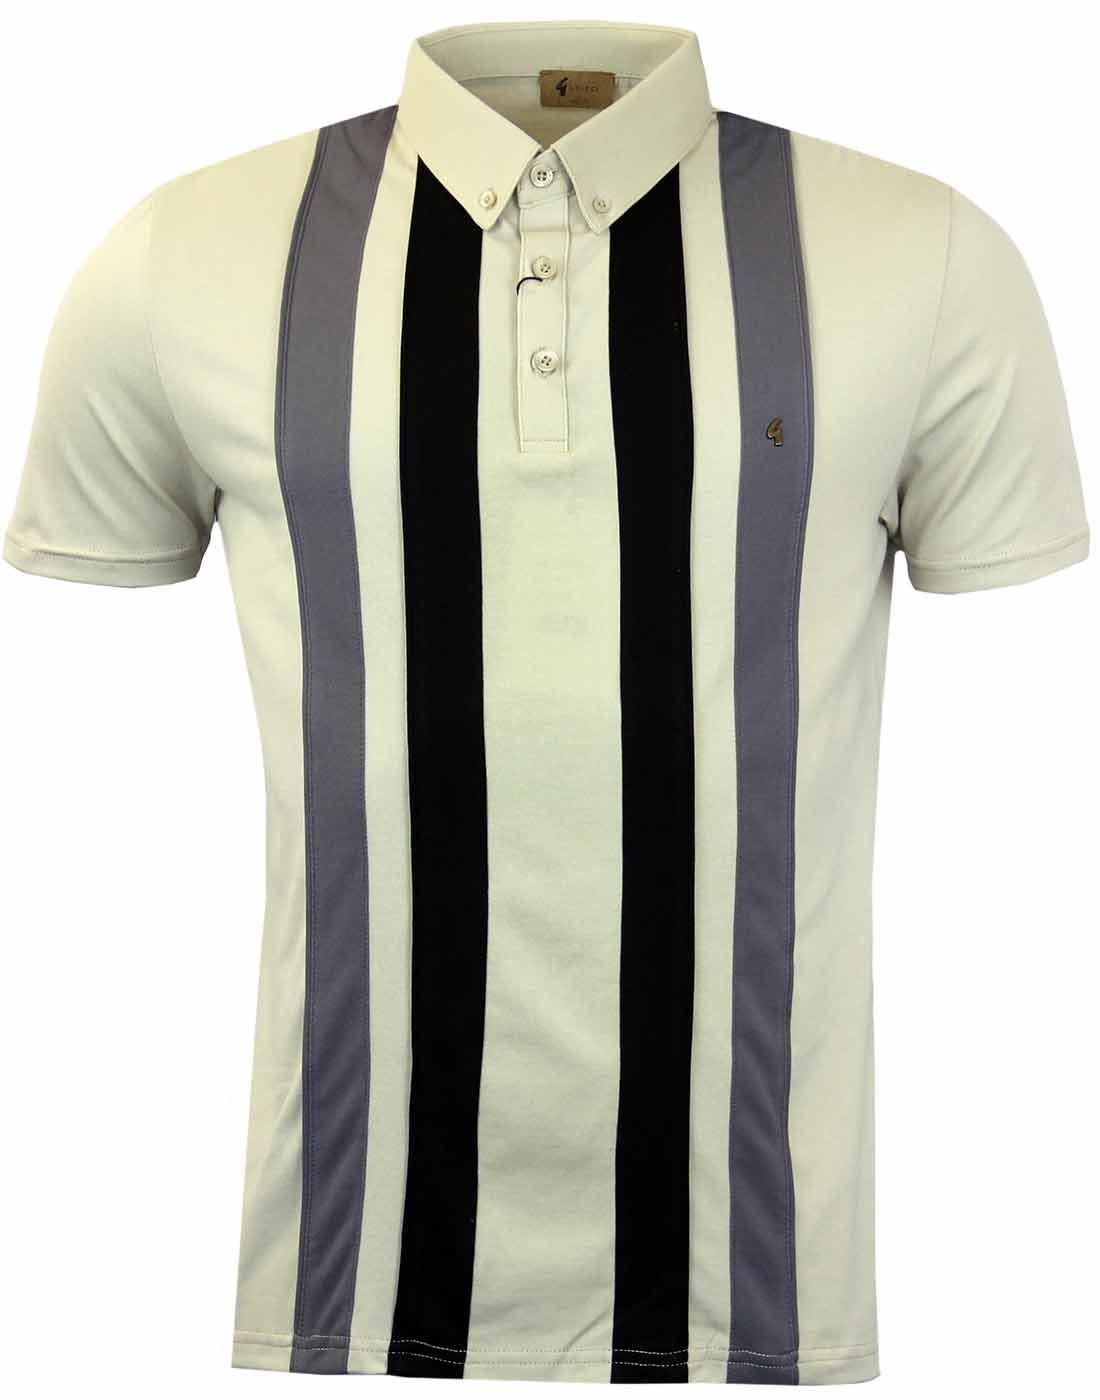 43ea096f5 GABICCI VINTAGE Retro Mod Raised Stripe Panel Polo Shirt in Latte ...